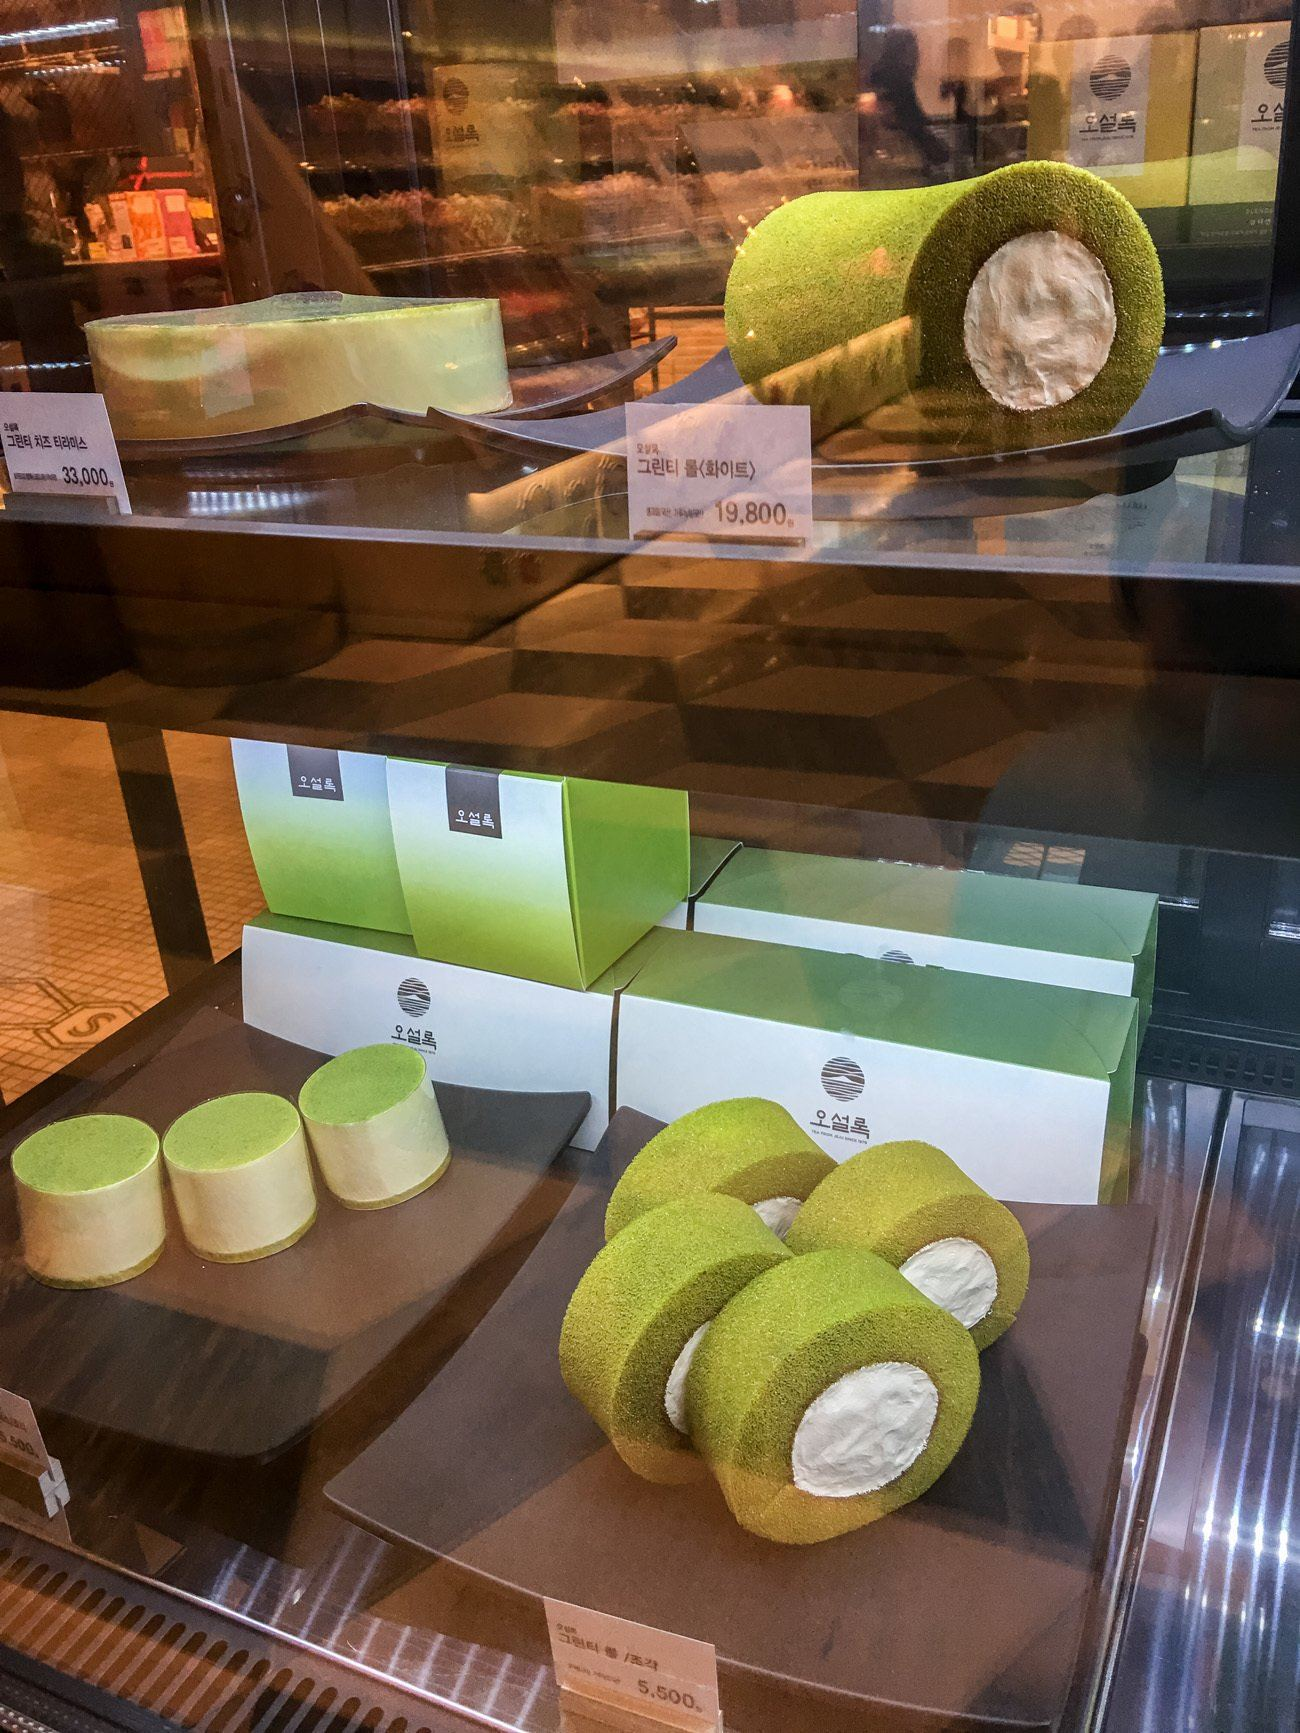 A roll cake in Shinsegae department store in Seoul. Roll cakes are must-eat desserts in Asia.